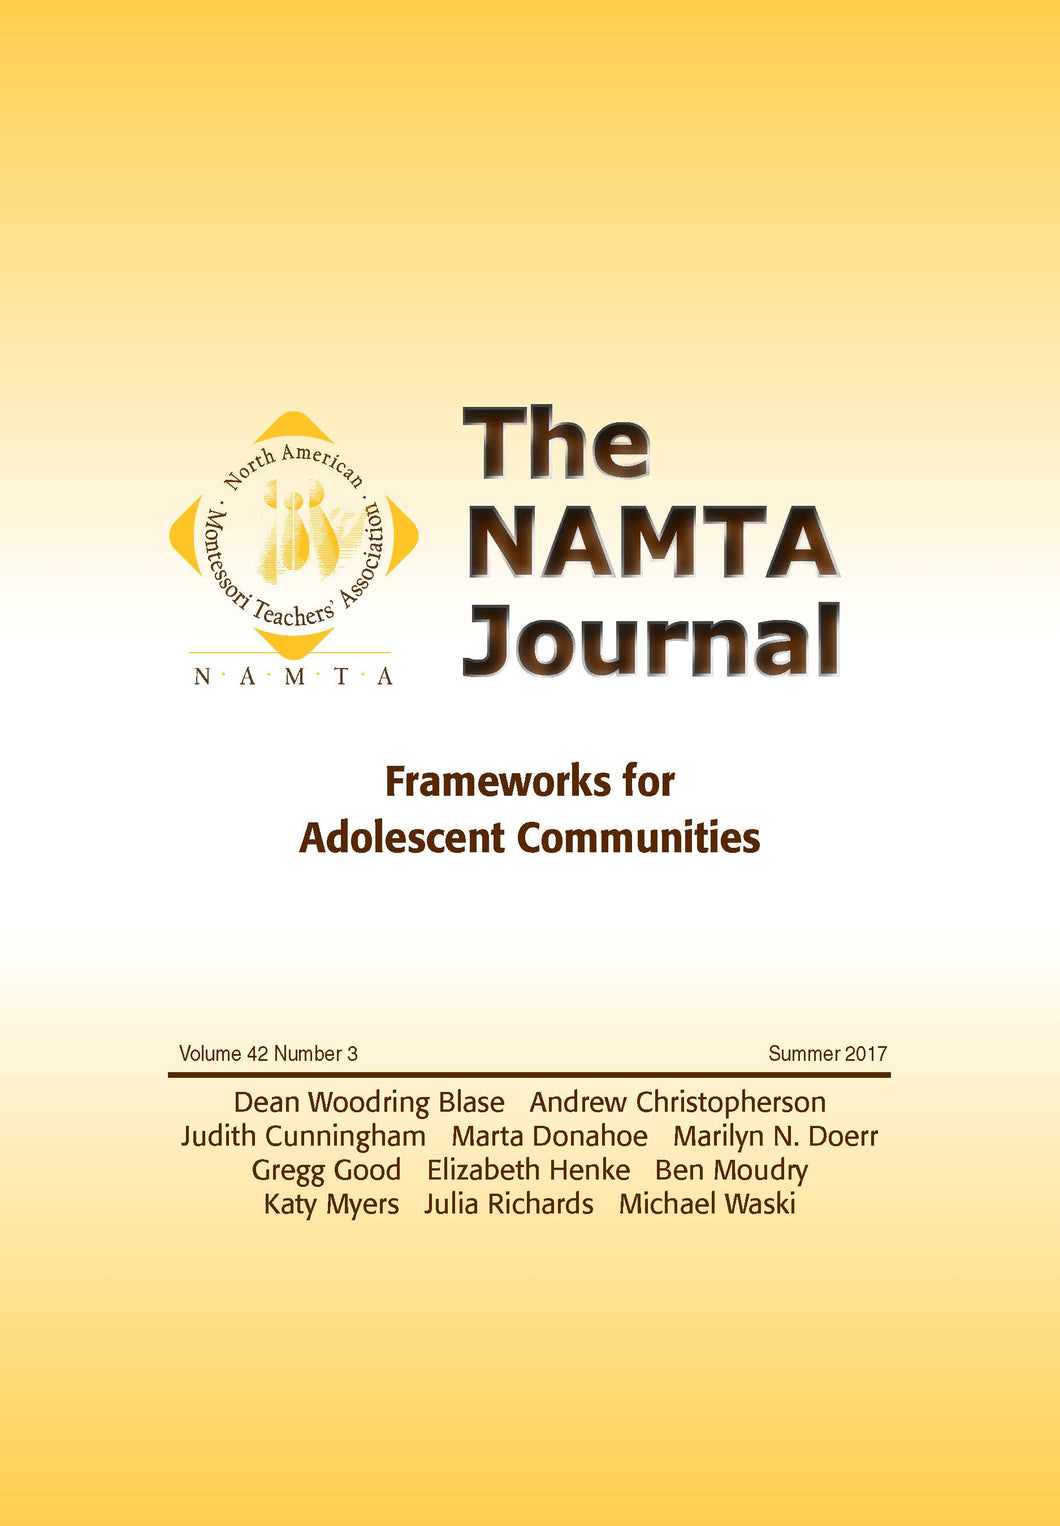 Vol 42, No 3: Frameworks for Adolescent Communities